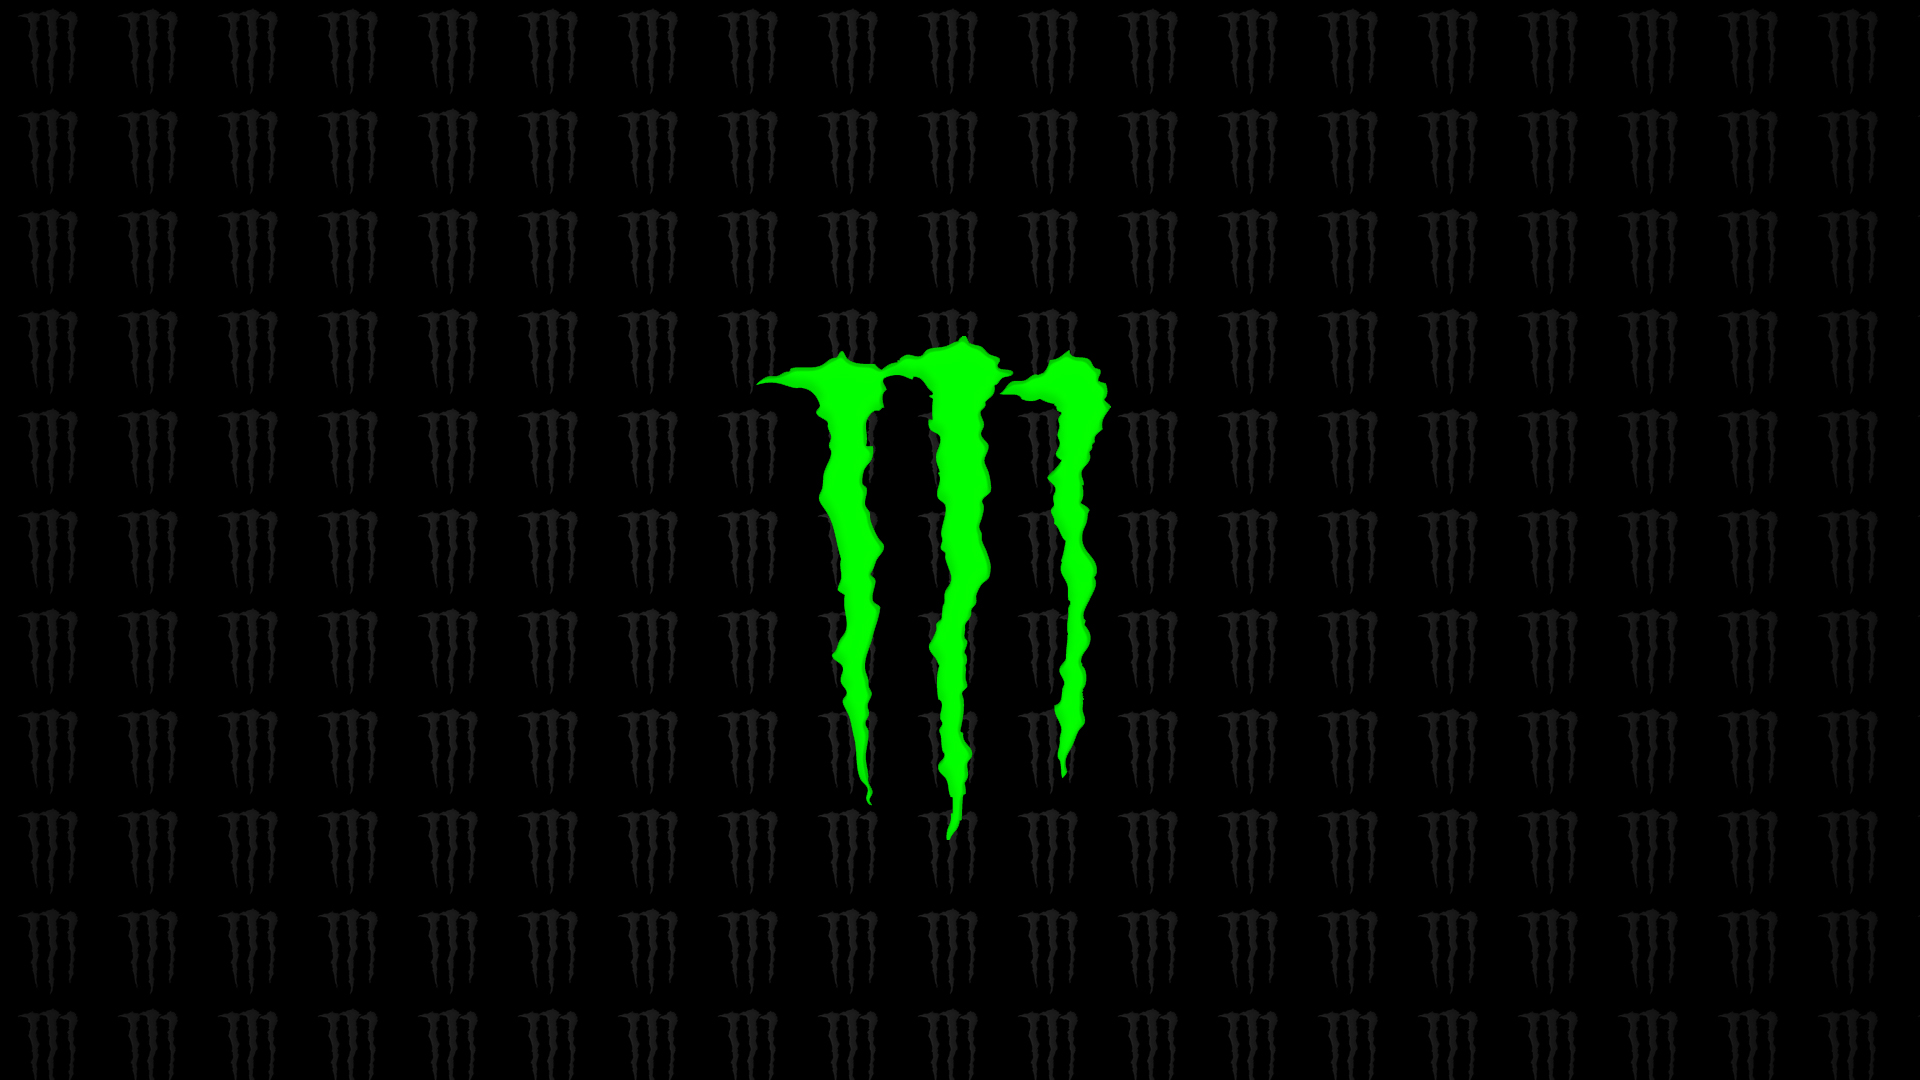 monster energy wallpaper hd for desktop pictures to pin on